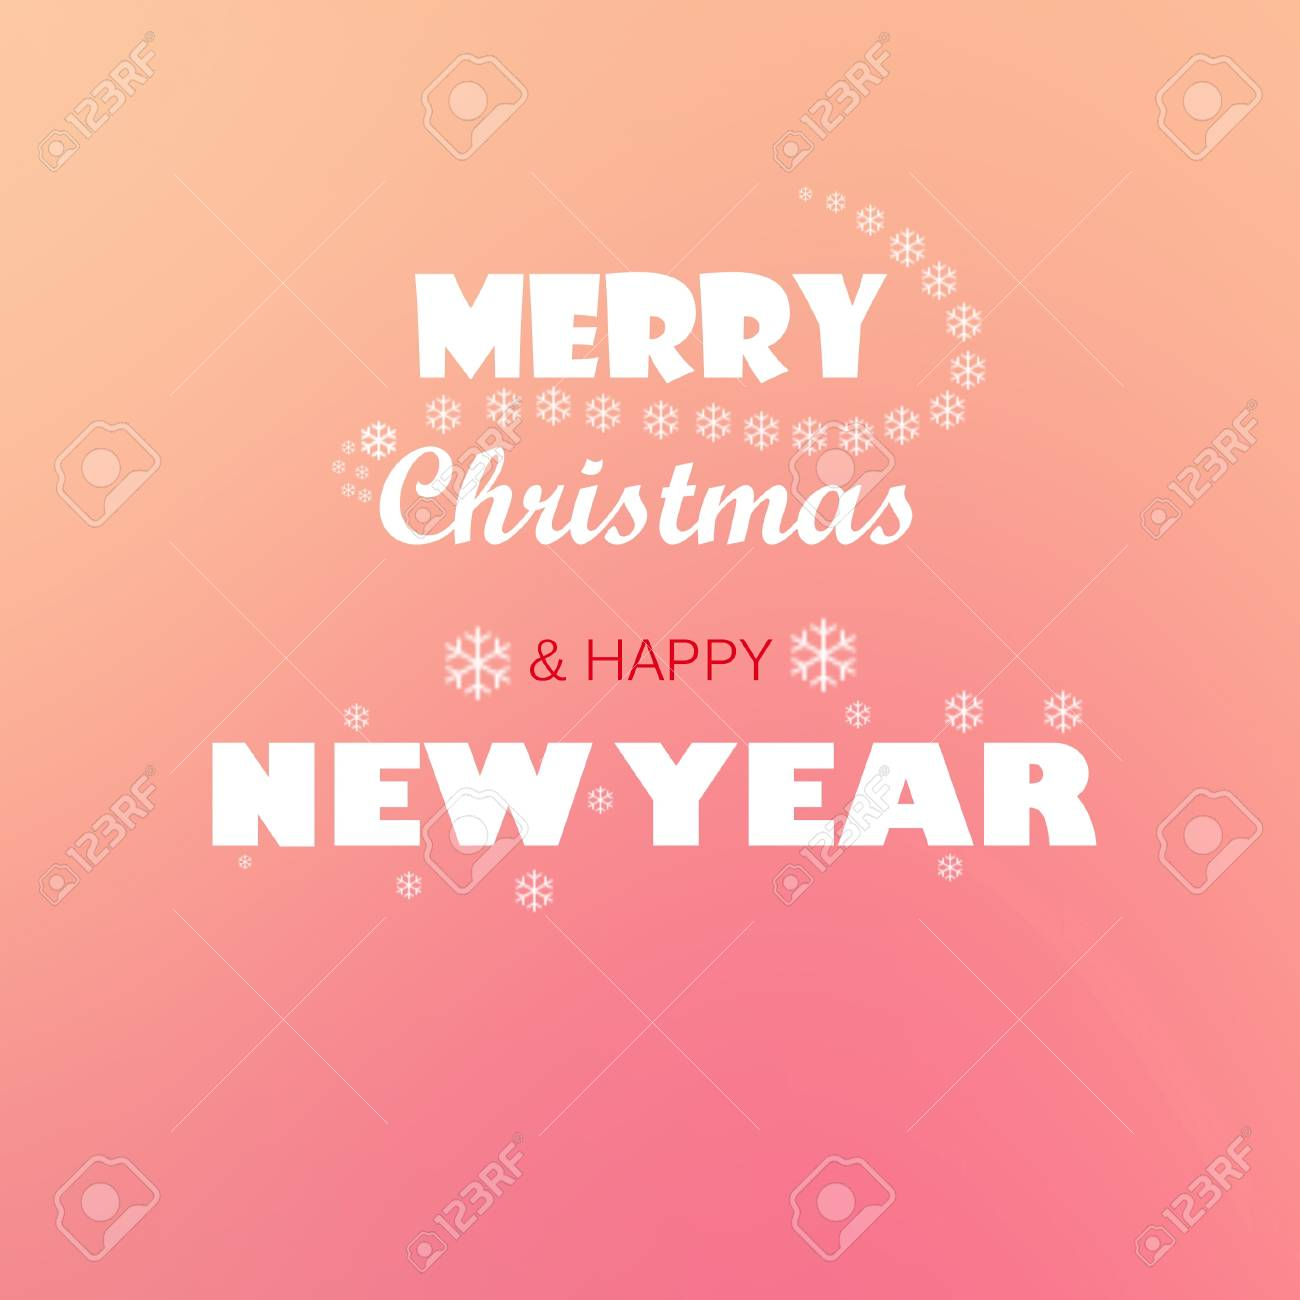 merry christmas and happy new year greetings slogan stock photo 33784734